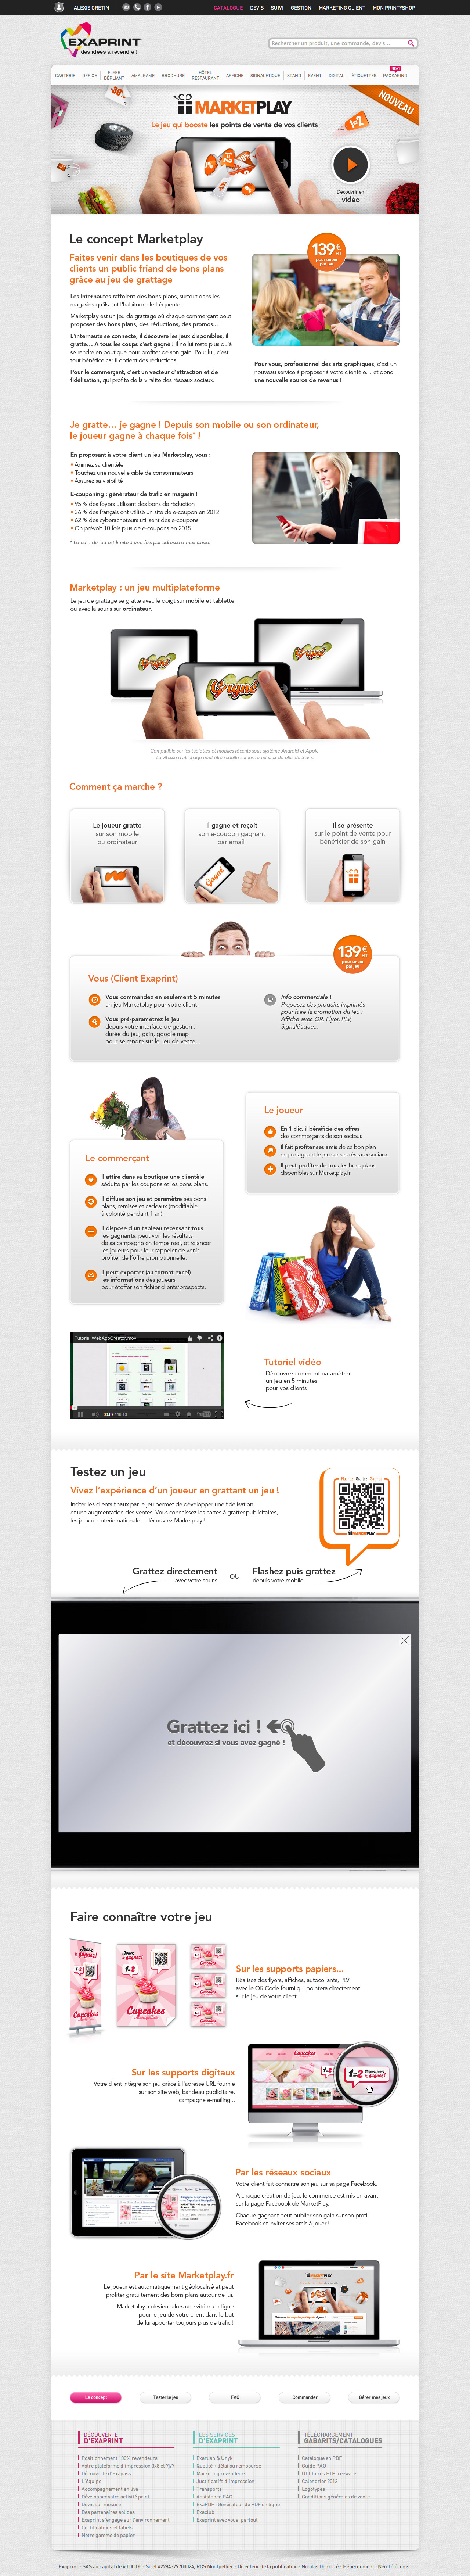 marketplay-site-exaprint-creation-communication-caconcept-alexis-cretin-graphiste